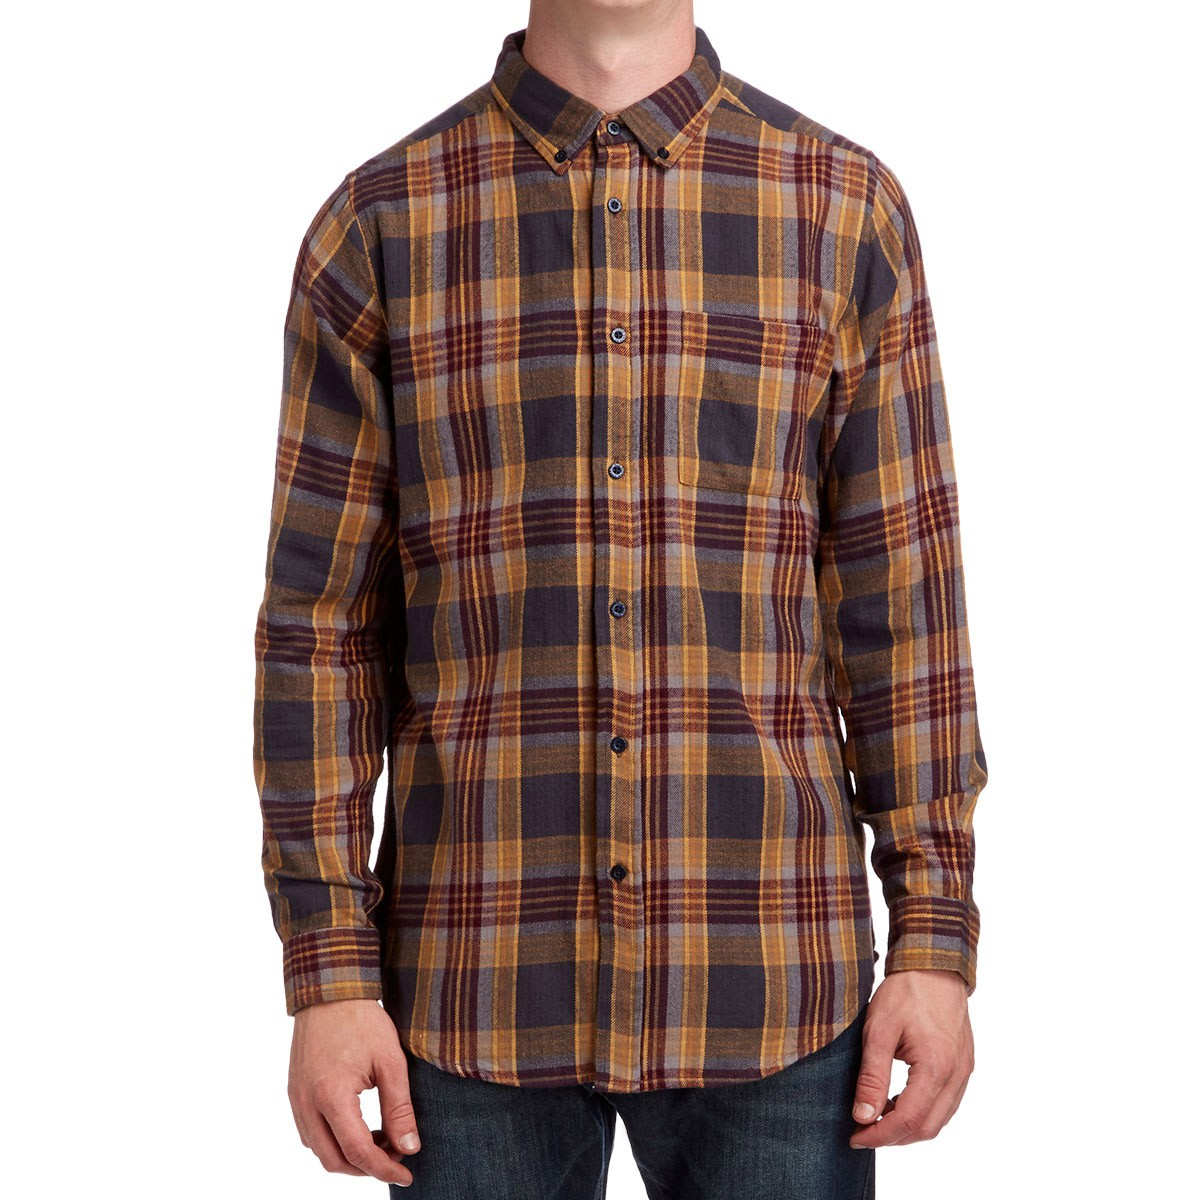 Ccs flannel long sleeve shirt southbank plaid for Plaid shirt long sleeve